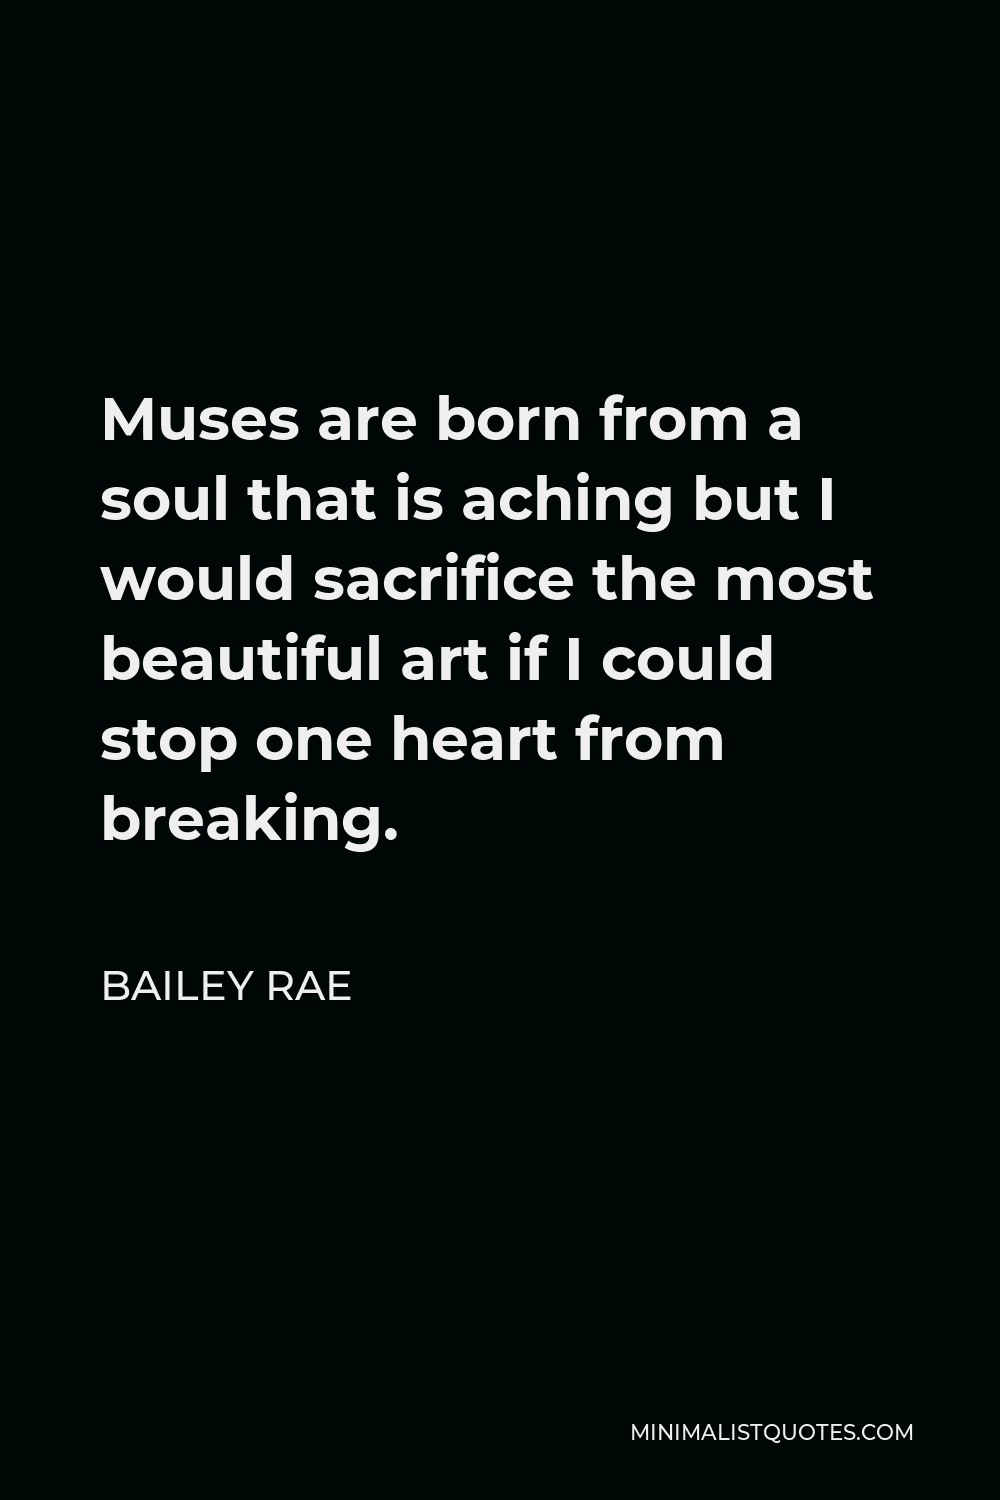 Bailey Rae Quote - Muses are born from a soul that is aching but I would sacrifice the most beautiful art if I could stop one heart from breaking.